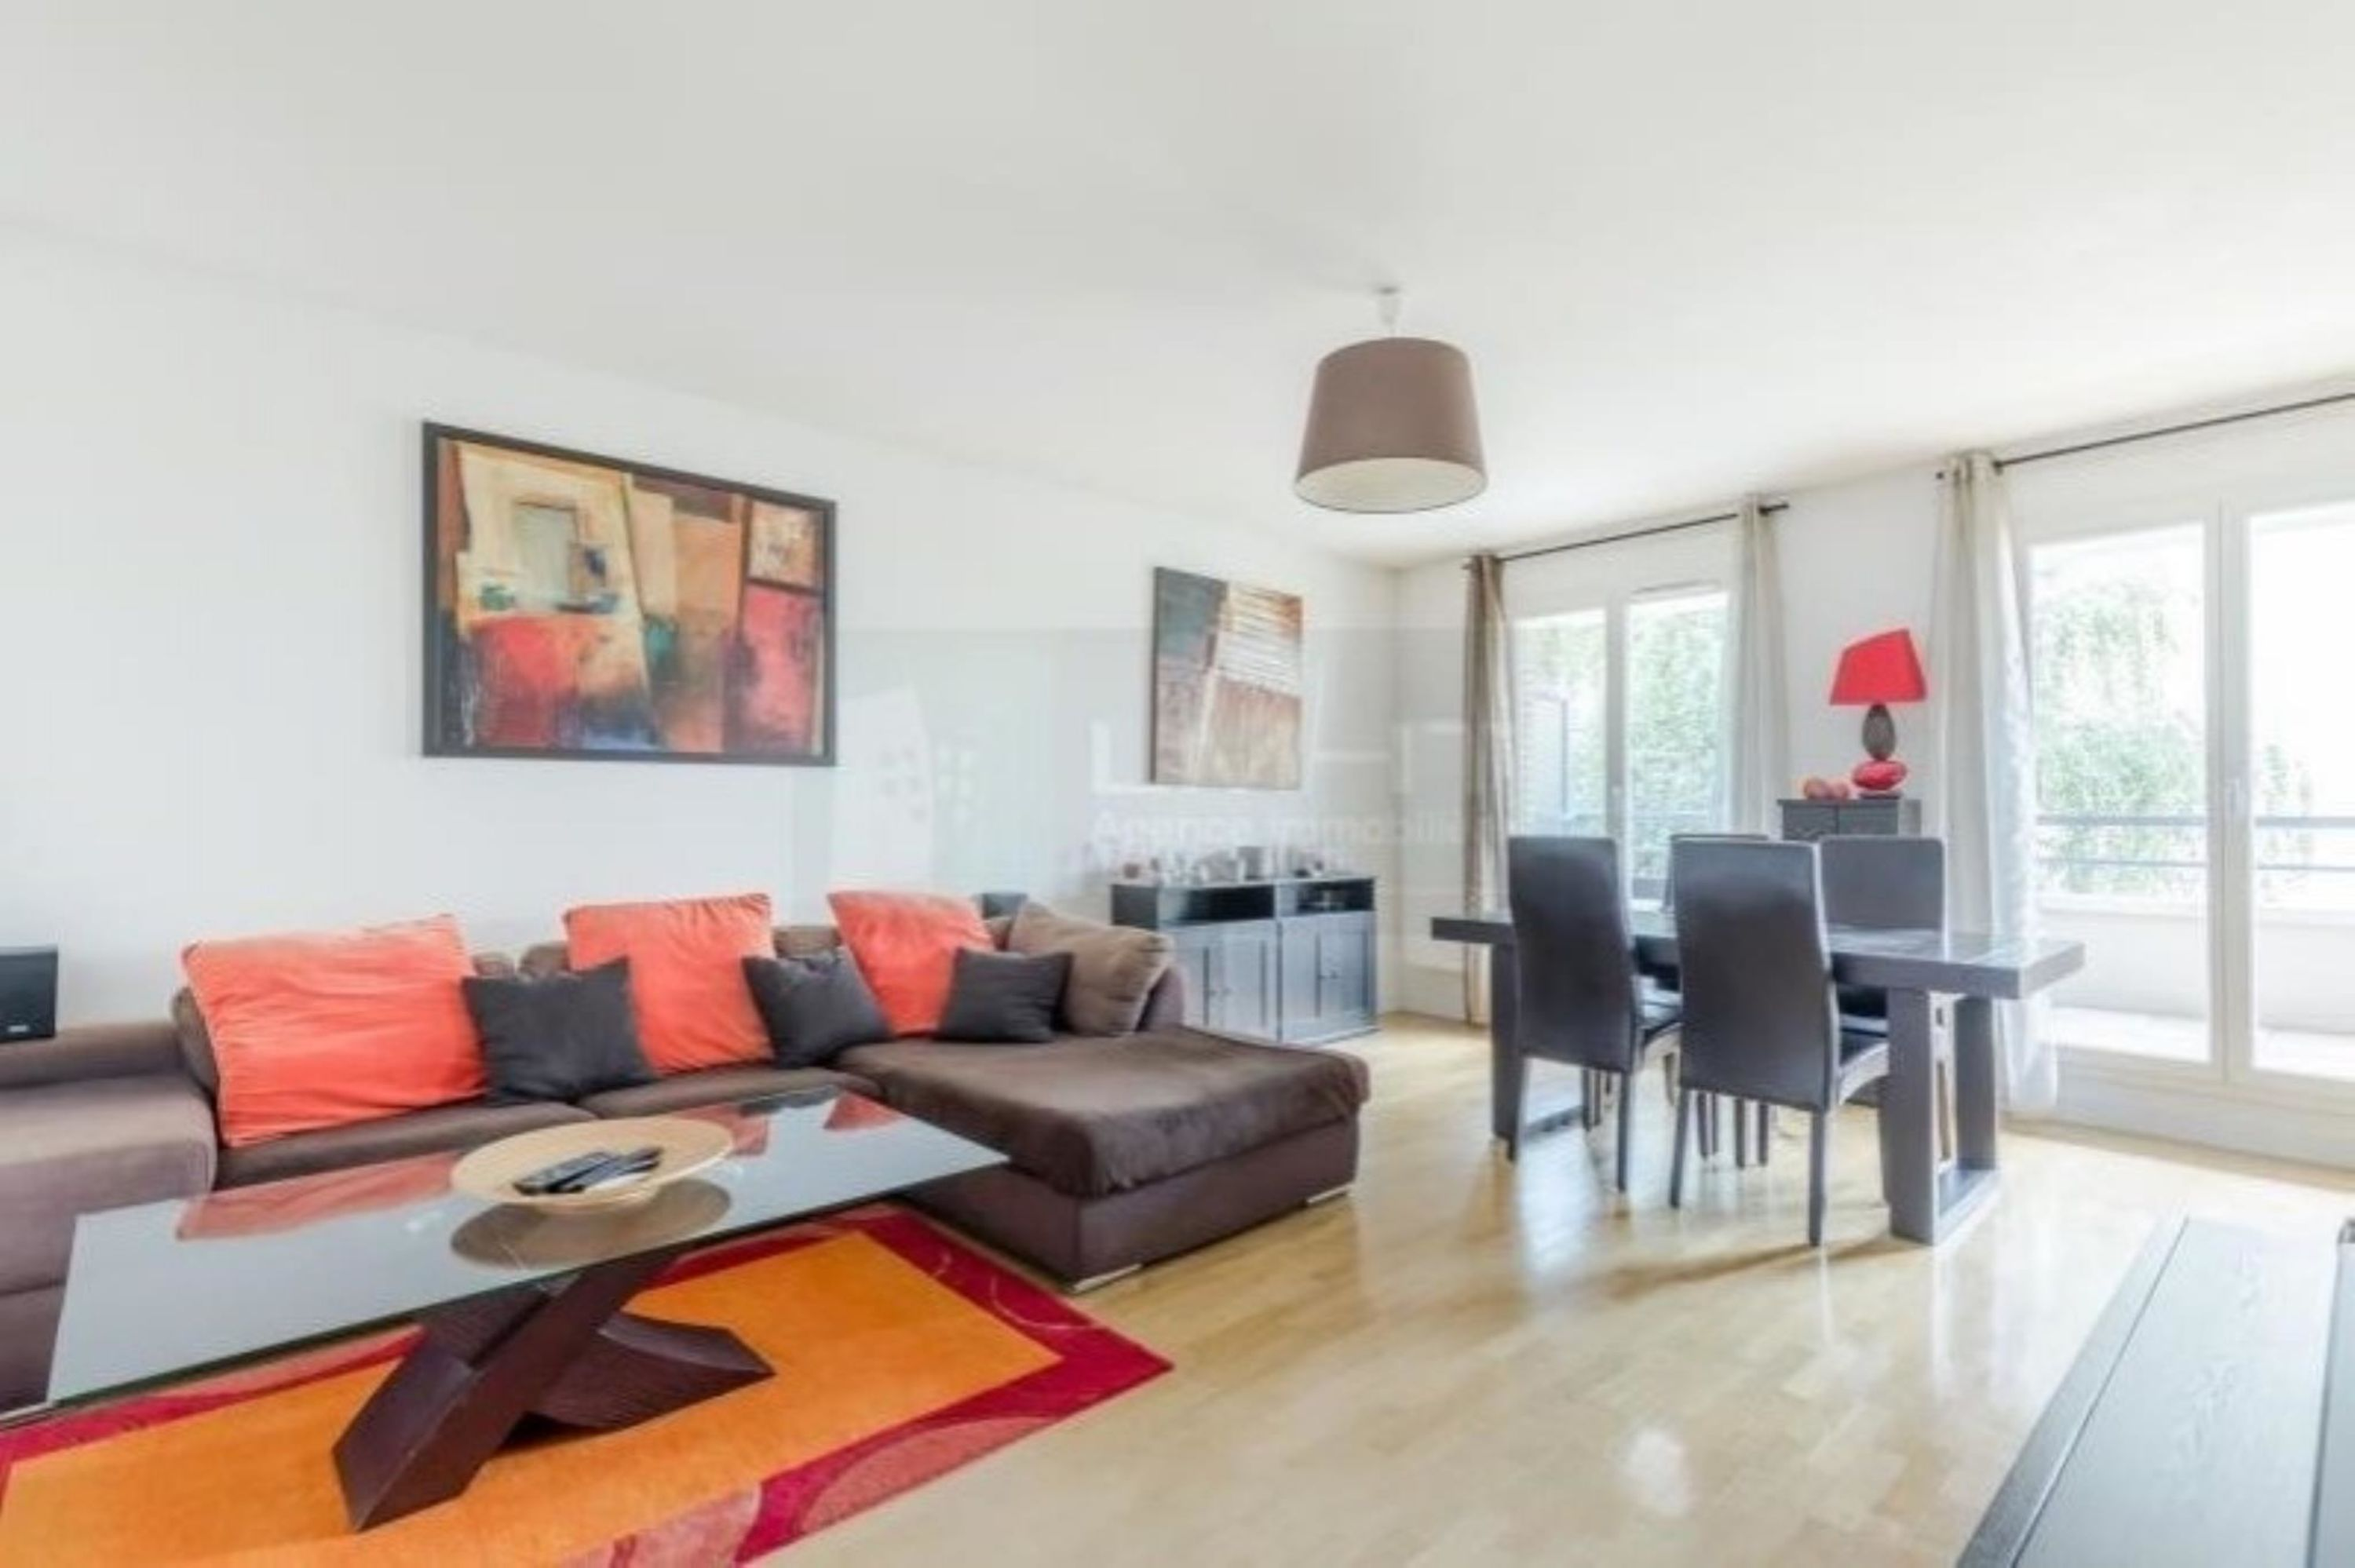 agence immobilière sevres 92 le chesnay 78 achat vente location appartement maison immobilier LMHT ANF RYWTTFXC